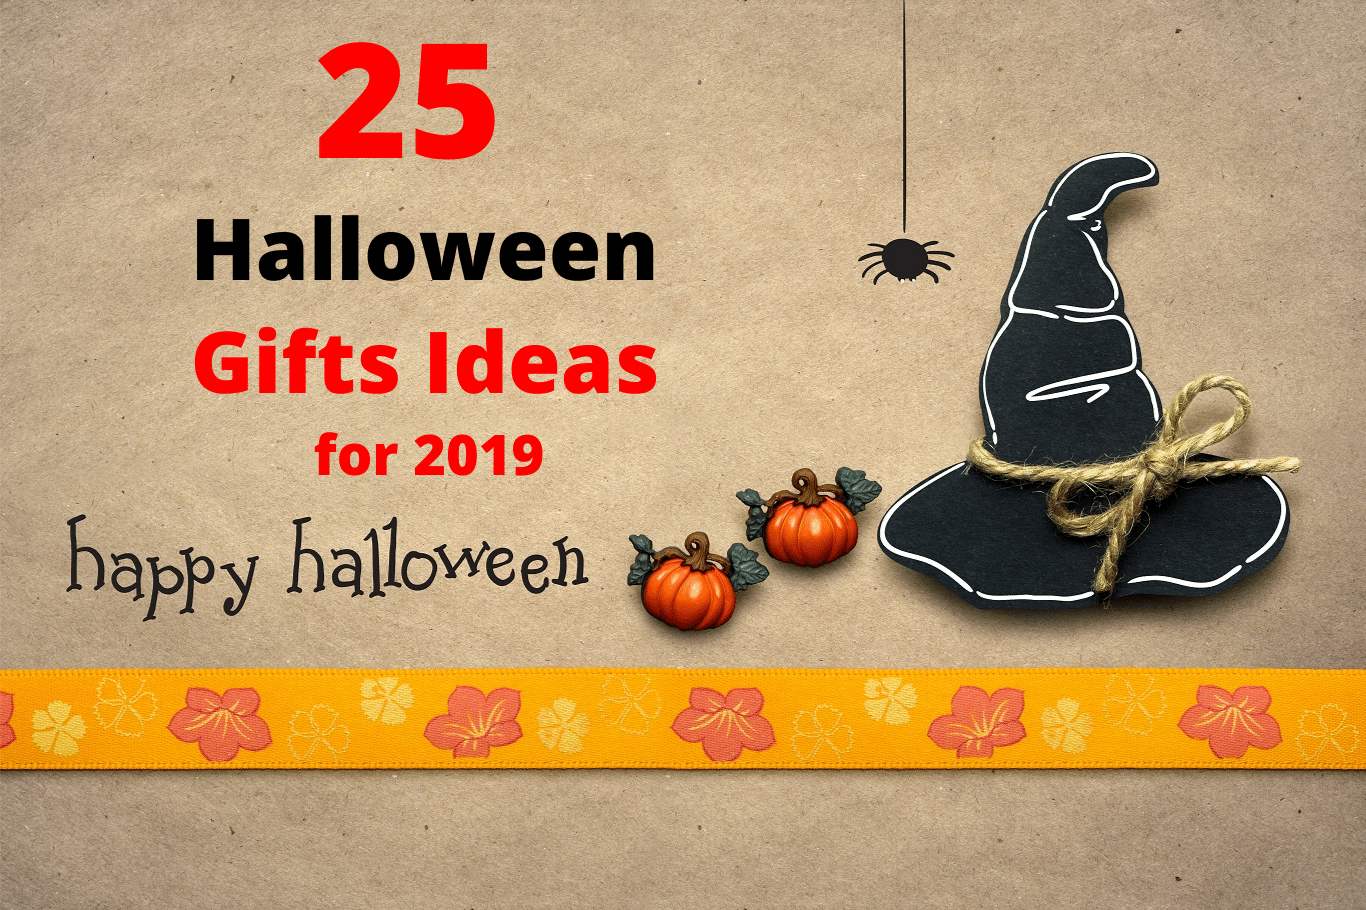 25 Halloween Gifts Ideas for 2019